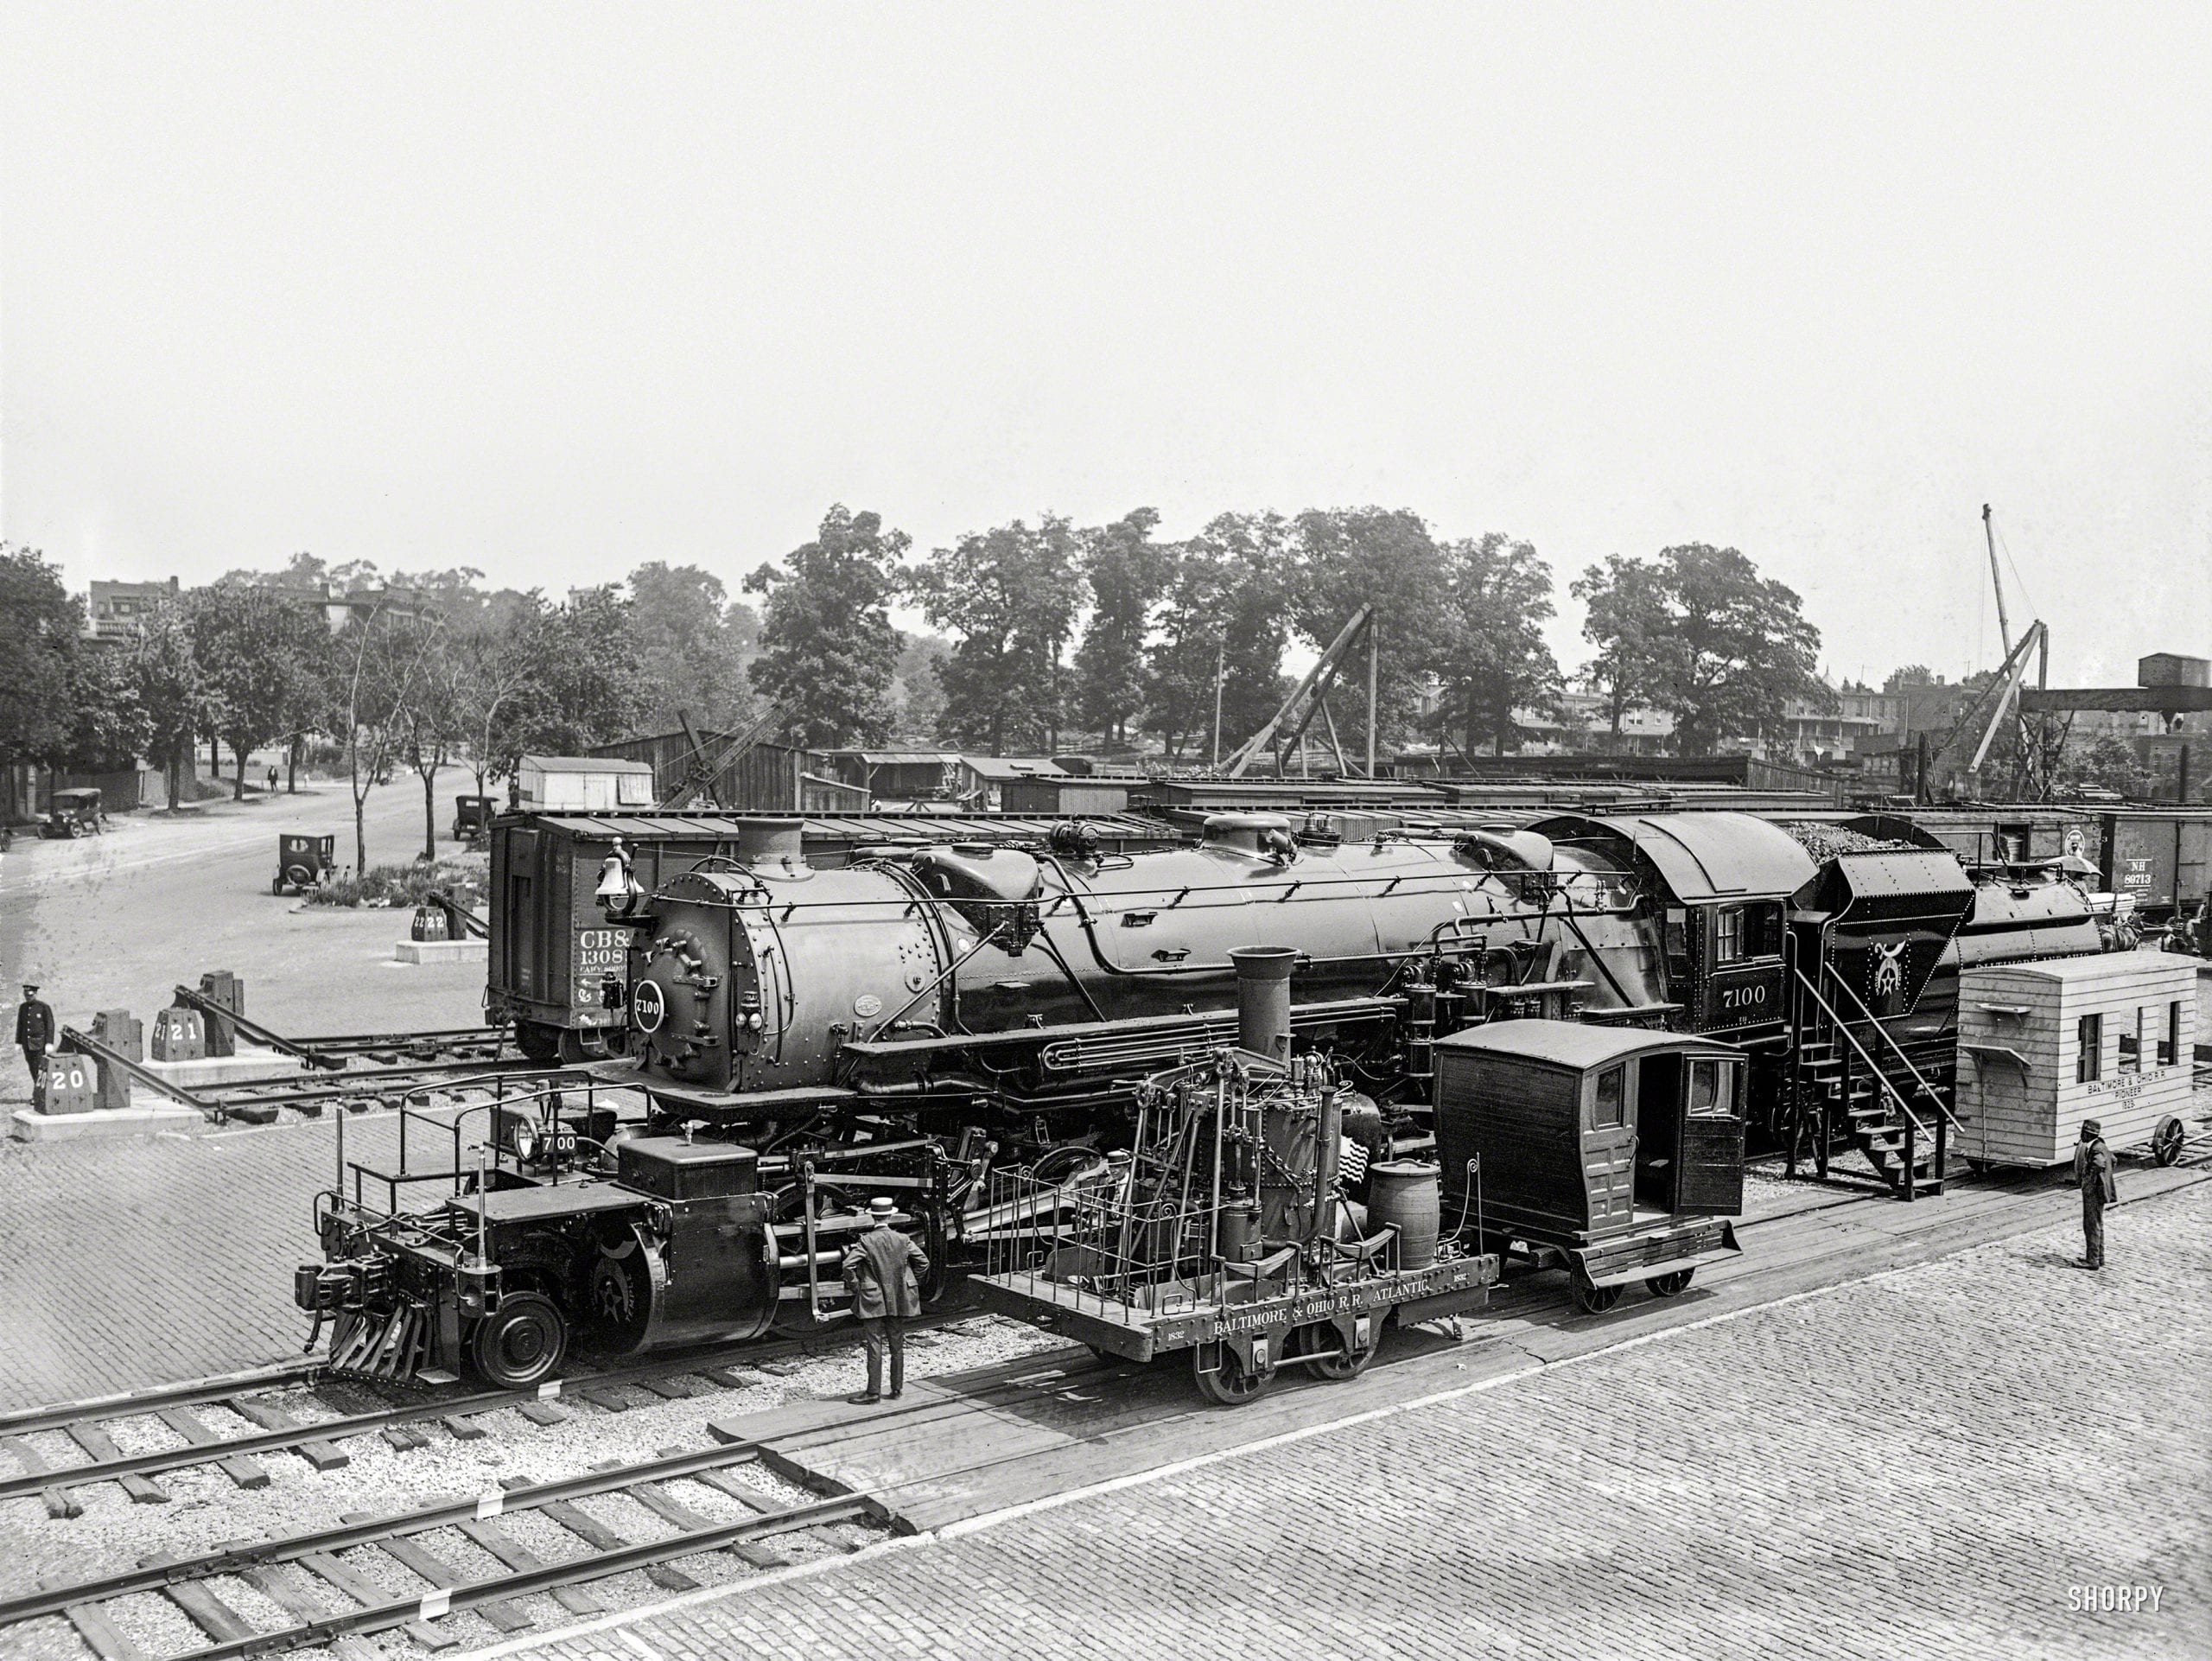 """""""Past and present in locomotives. Eckington Yards, June 4, 1923."""" A closeup of the locomotive in the Baltimore & Ohio rail yard during the Masonic convention in Washington, D.C. The big engine wears the livery of """"Boumi Temple,"""" a Baltimore Shrine lodge. 5x7 glass negative."""